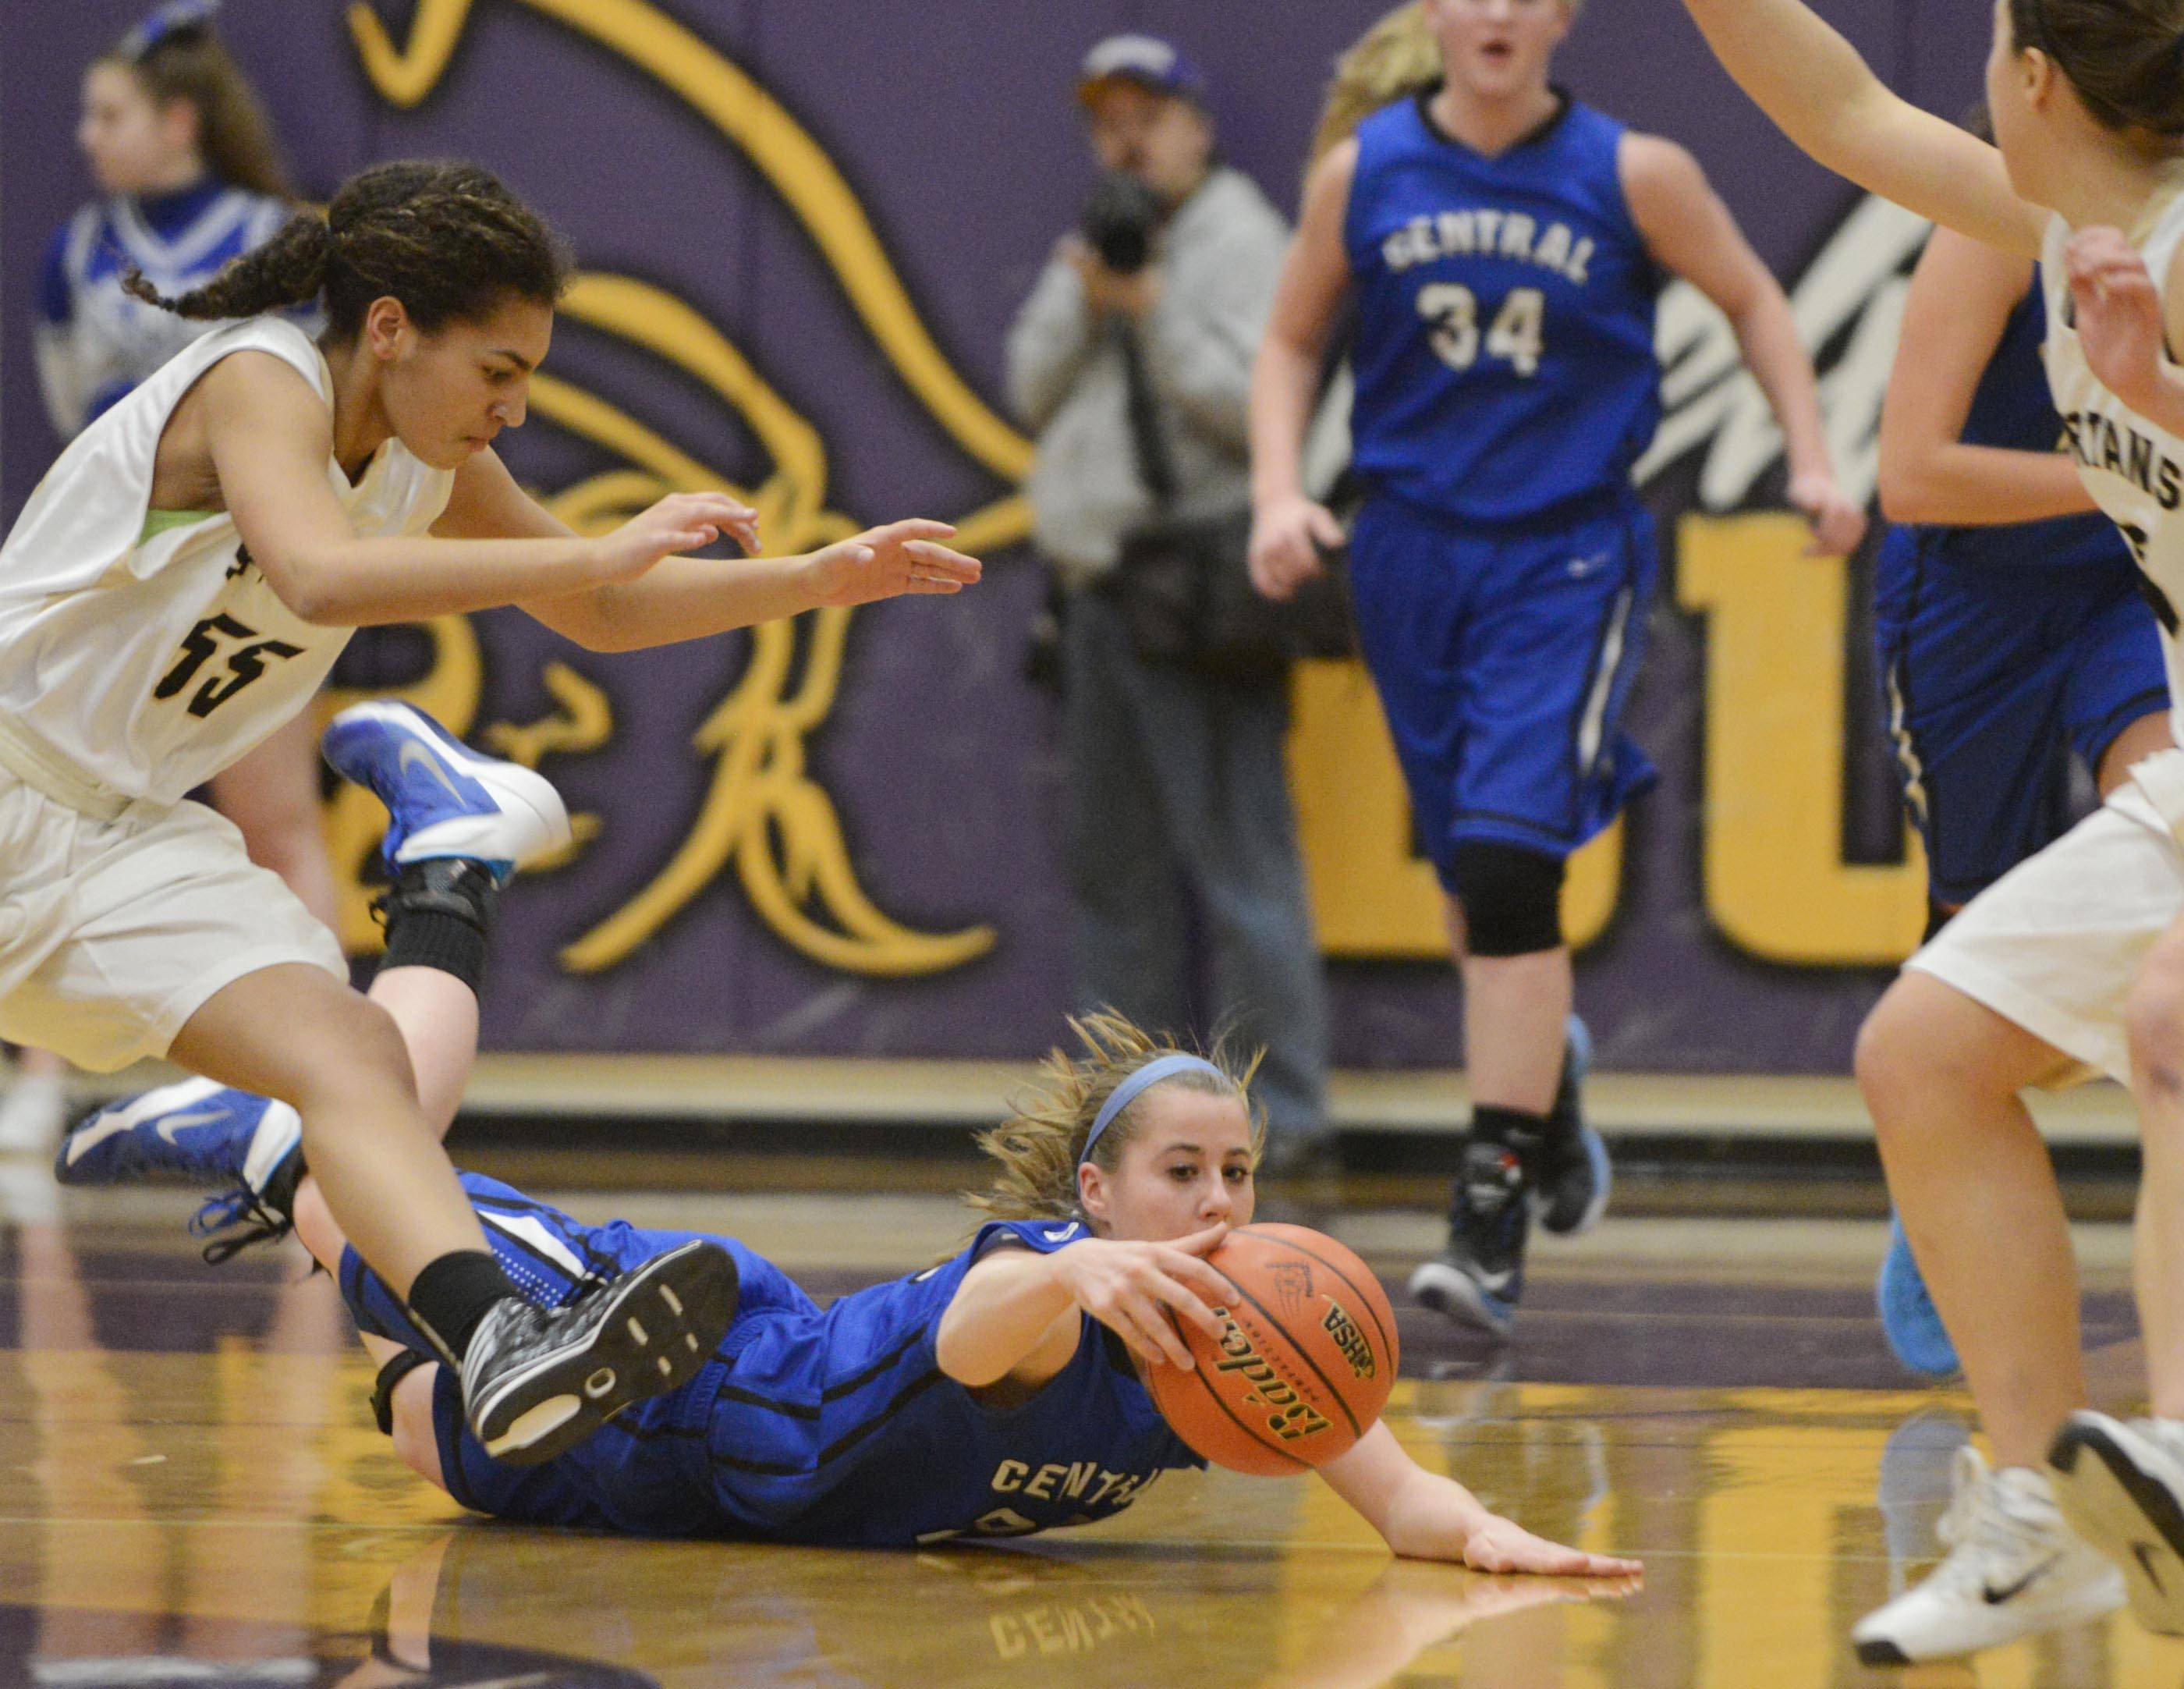 Burlington Central's Aly DeTamble dives on a loose ball between Sycamore players Monday in the Class 3A Belvidere sectional.